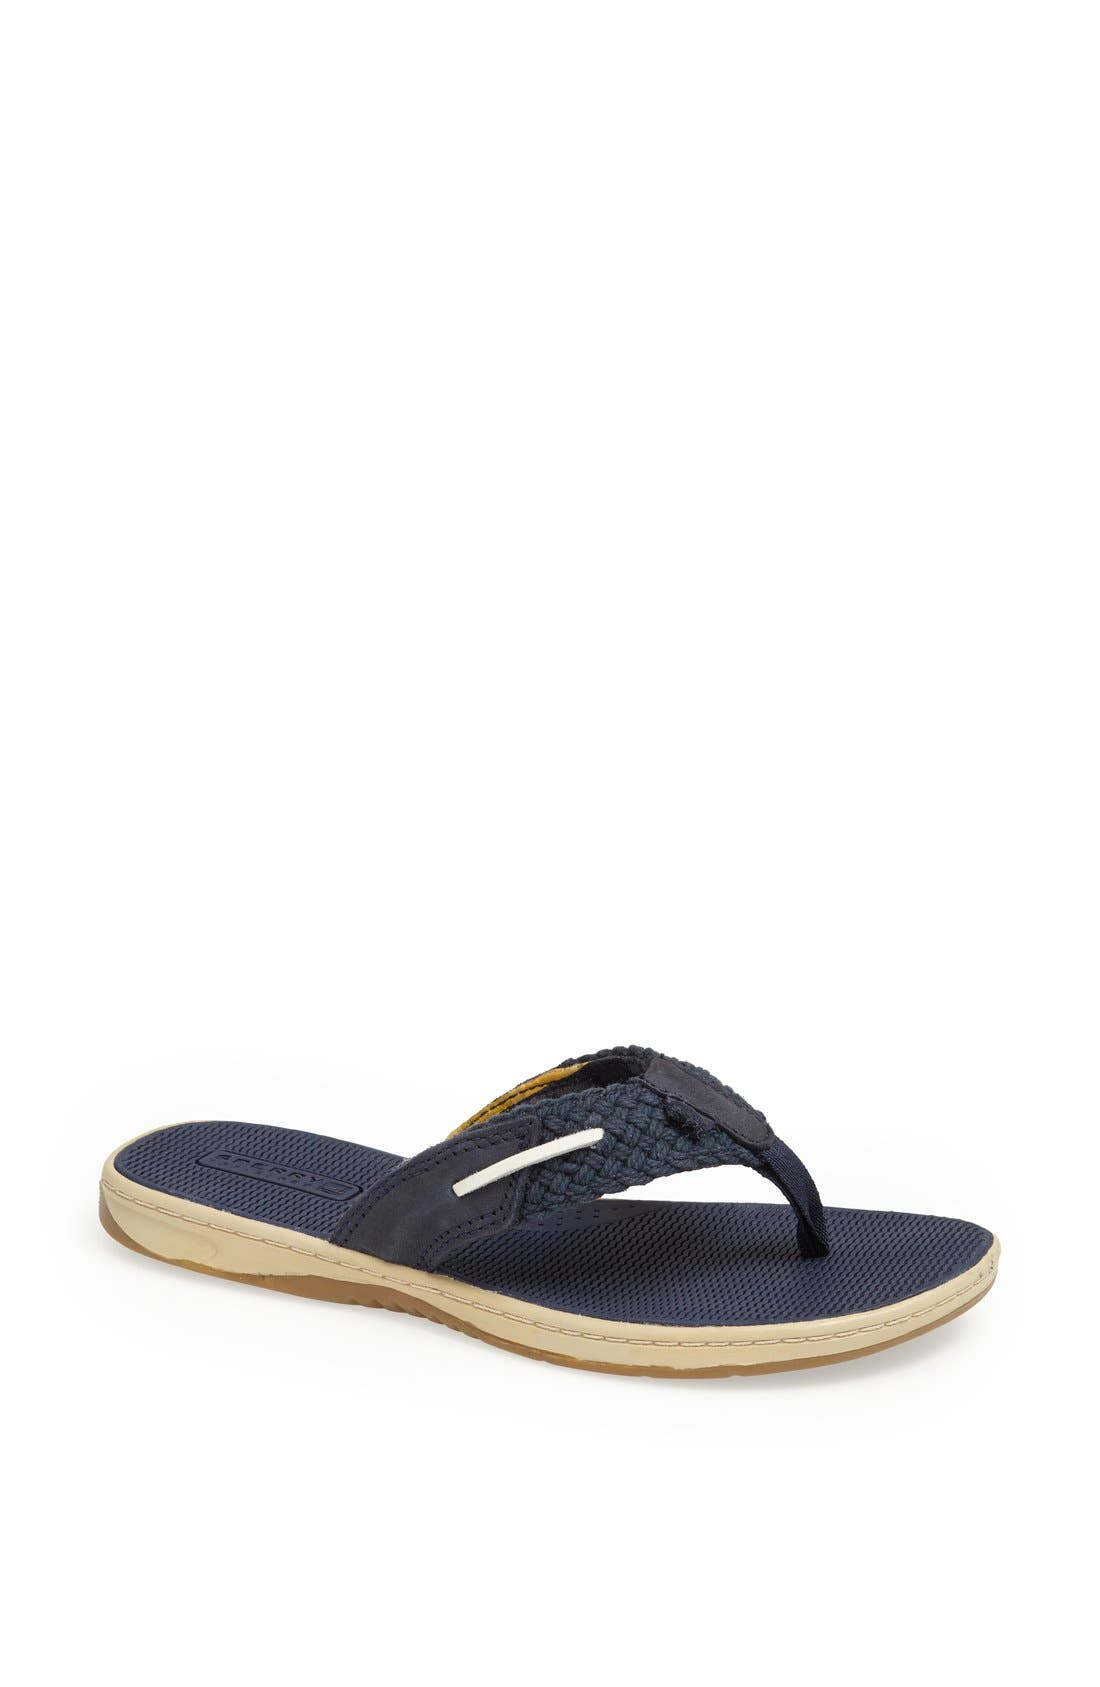 Alternate Image 1 Selected - Sperry Top-Sider® 'Parrotfish' Thong Sandal